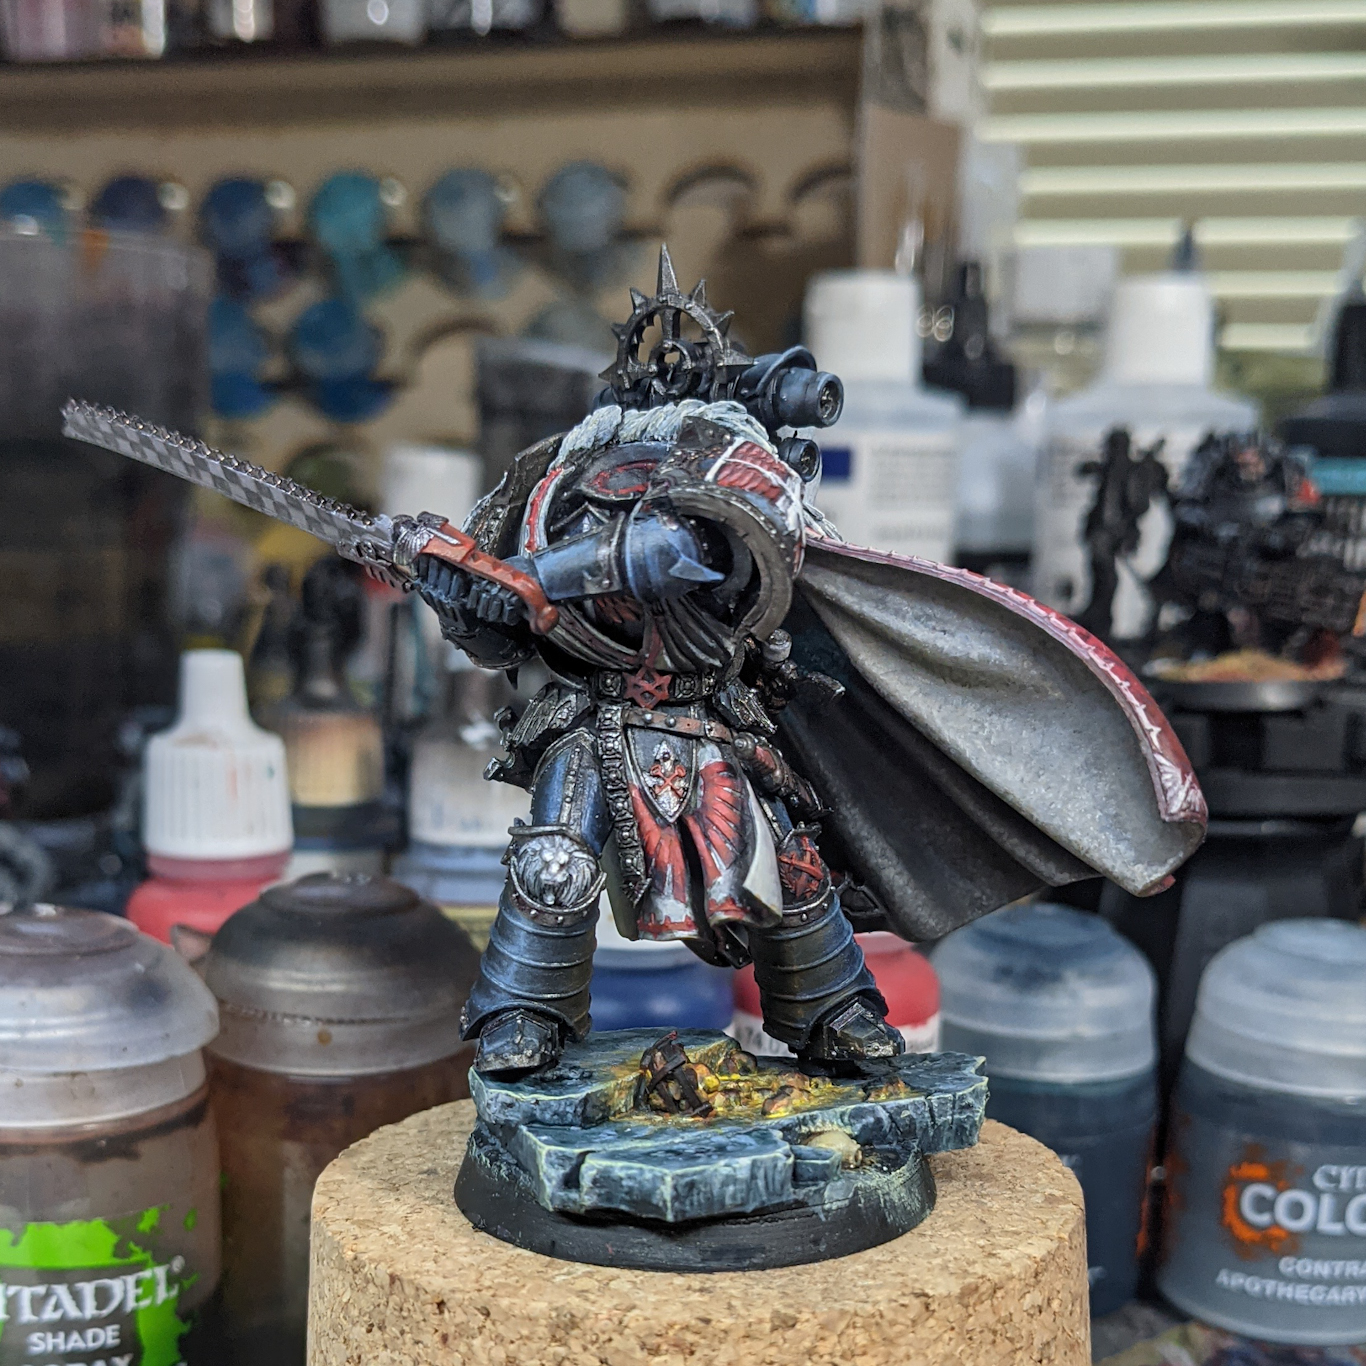 A partially painted (and headless) model of a model warrior in ornate black armour.  The model is painted black, with a white and red cloak.